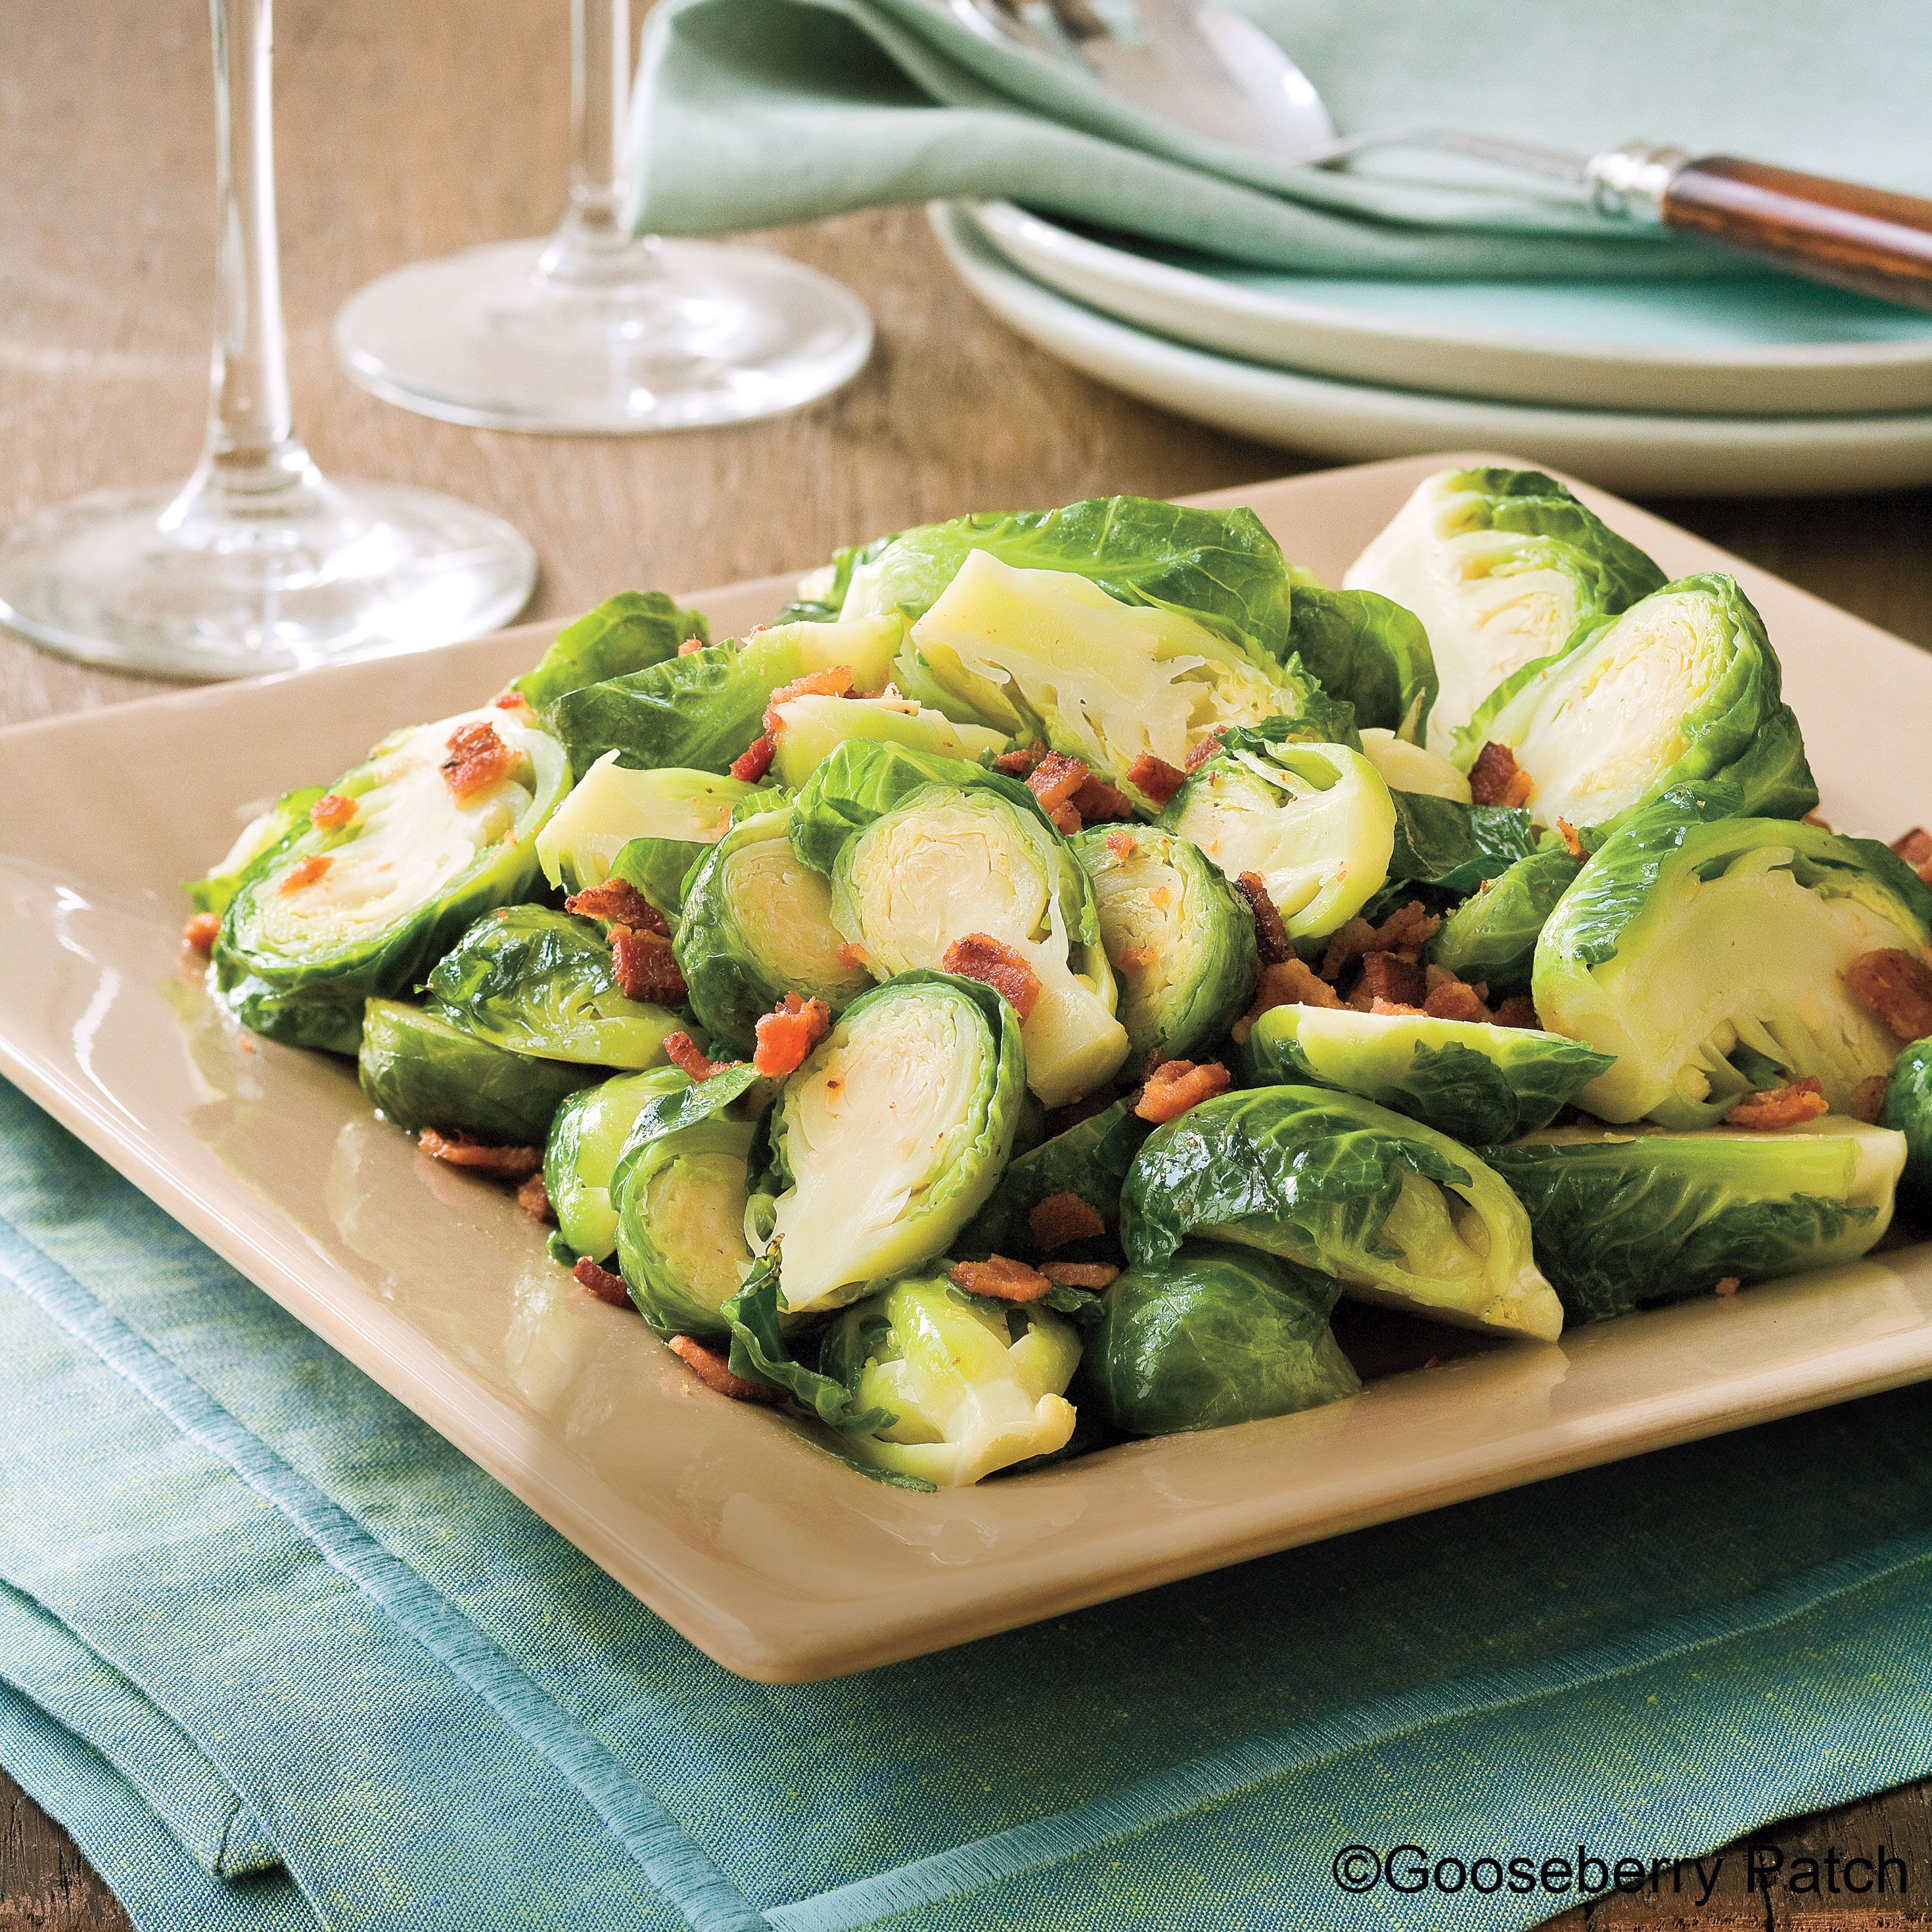 Sprouts Christmas Eve Hours 2020 Gooseberry Patch Recipes: Bacon Brown Sugar Brussels Sprouts from